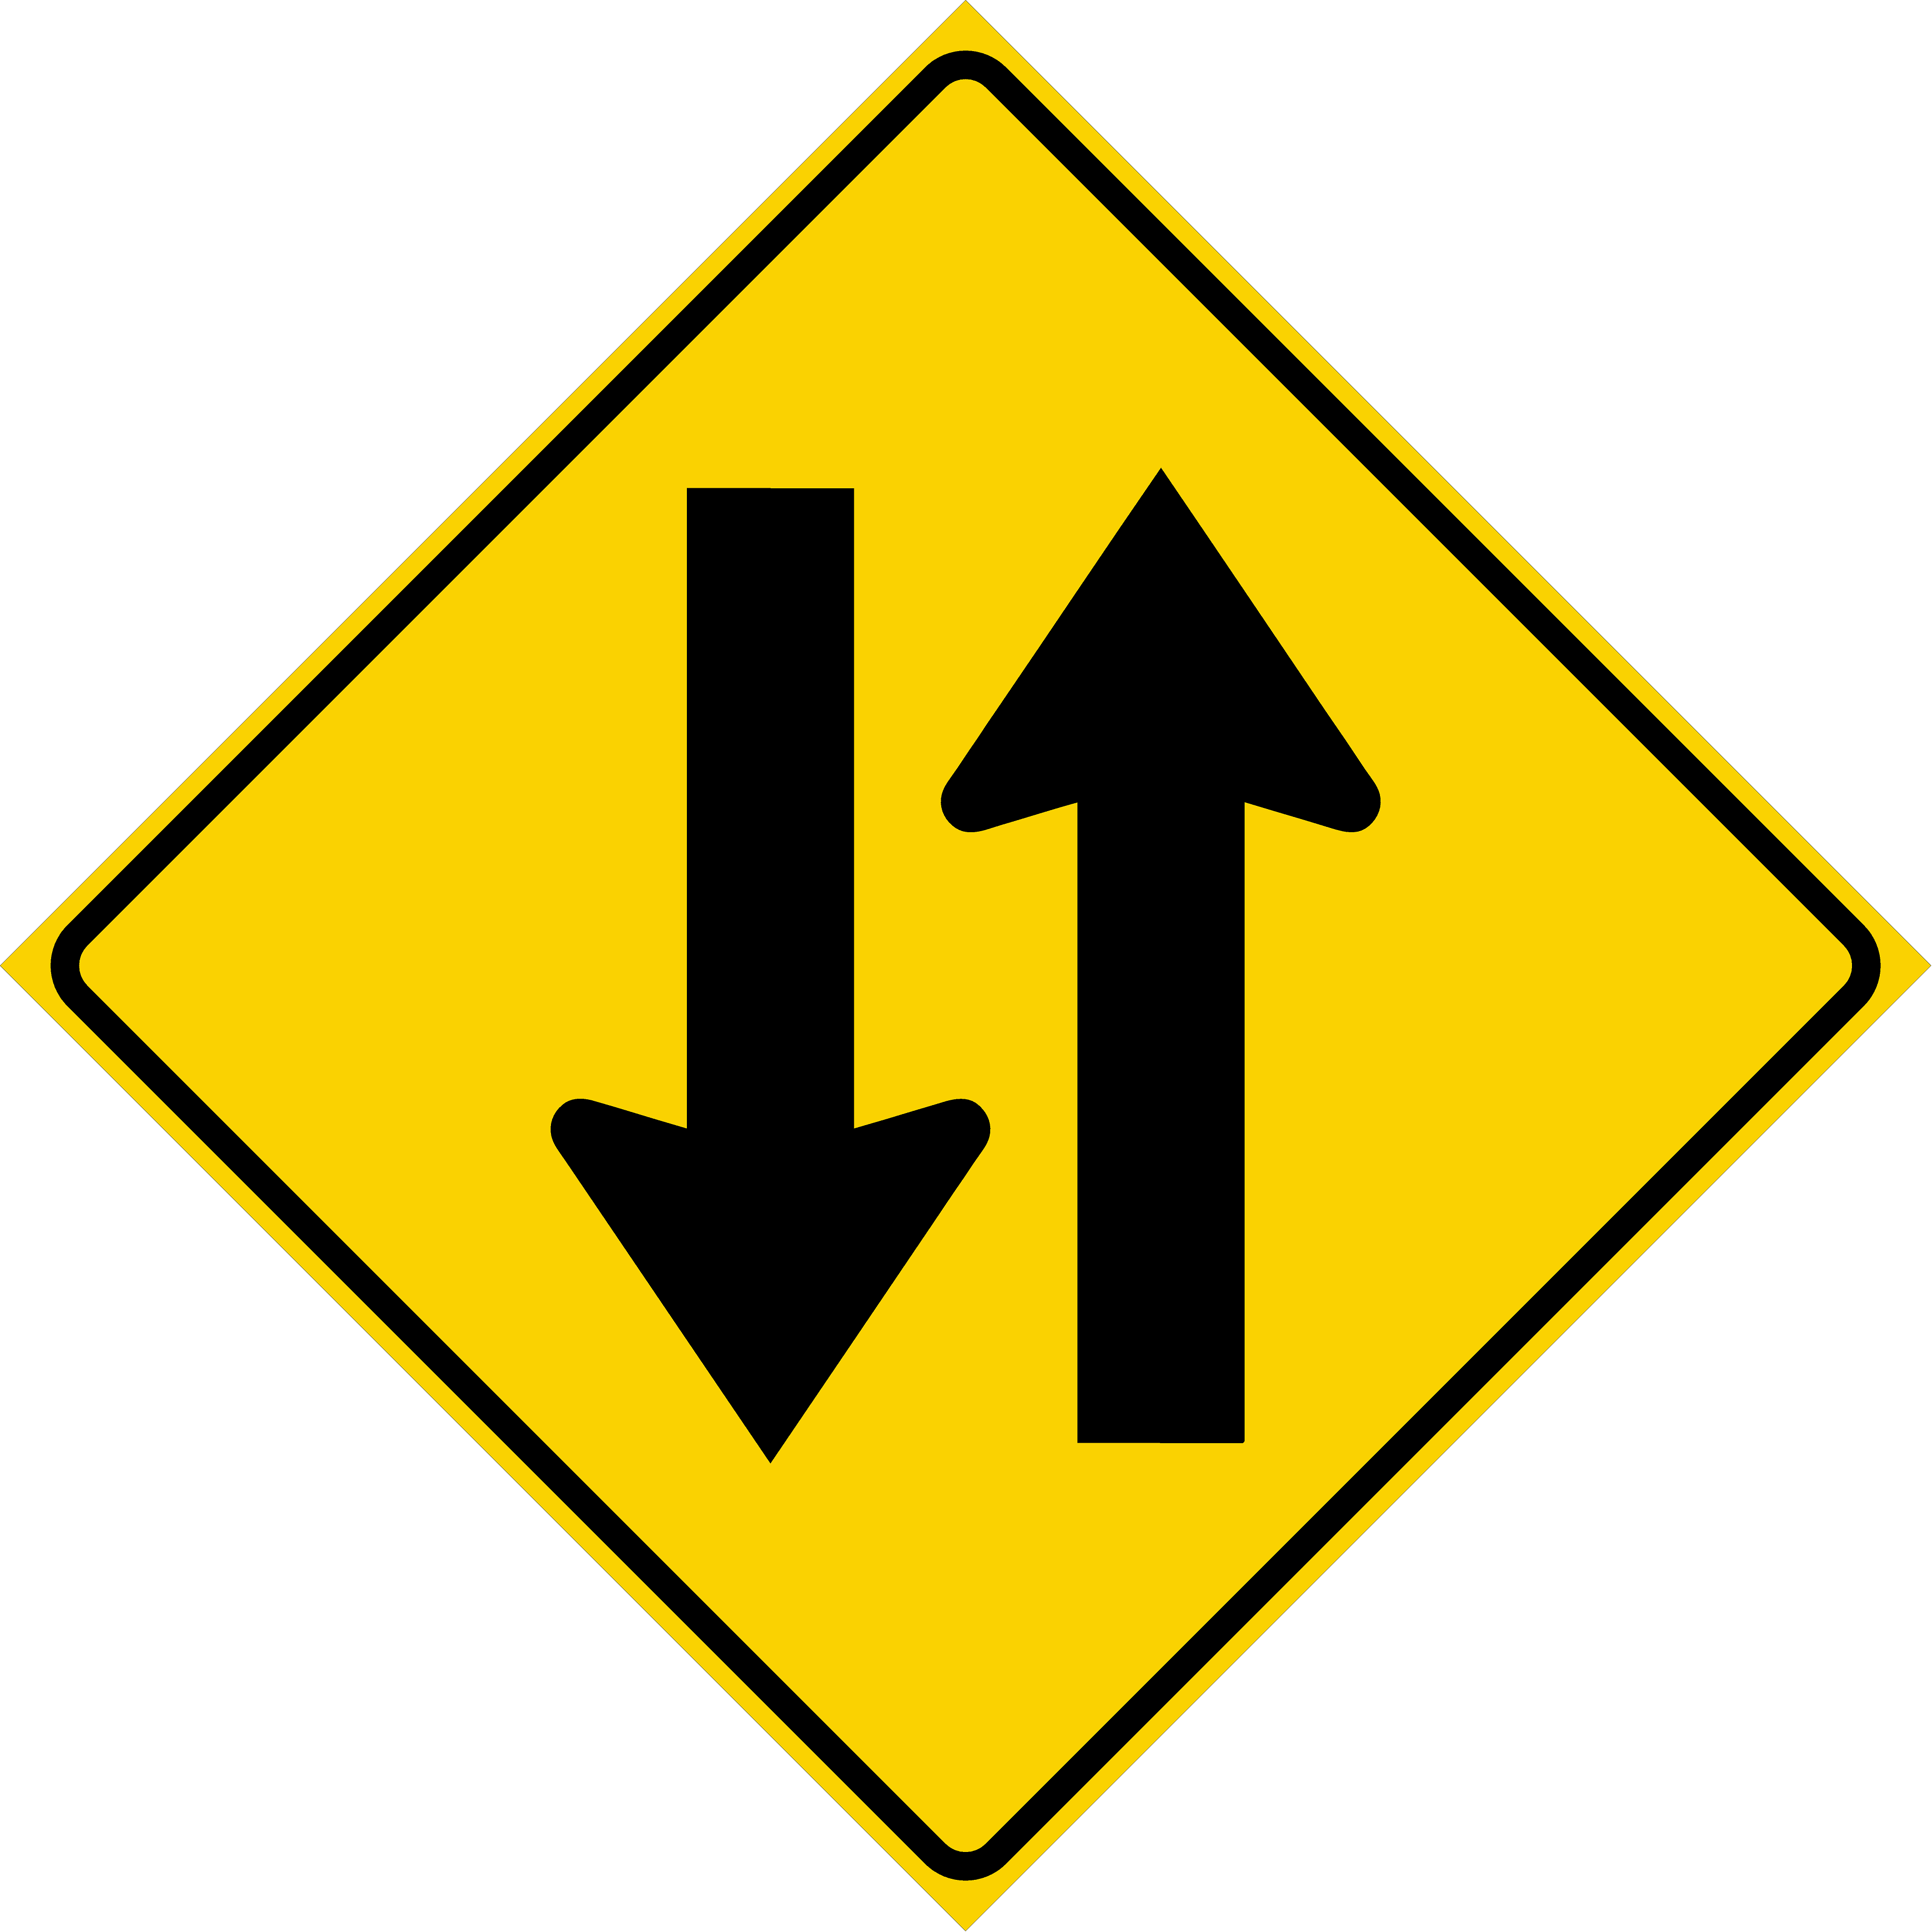 Two Way Traffic Symbol (W6-3)